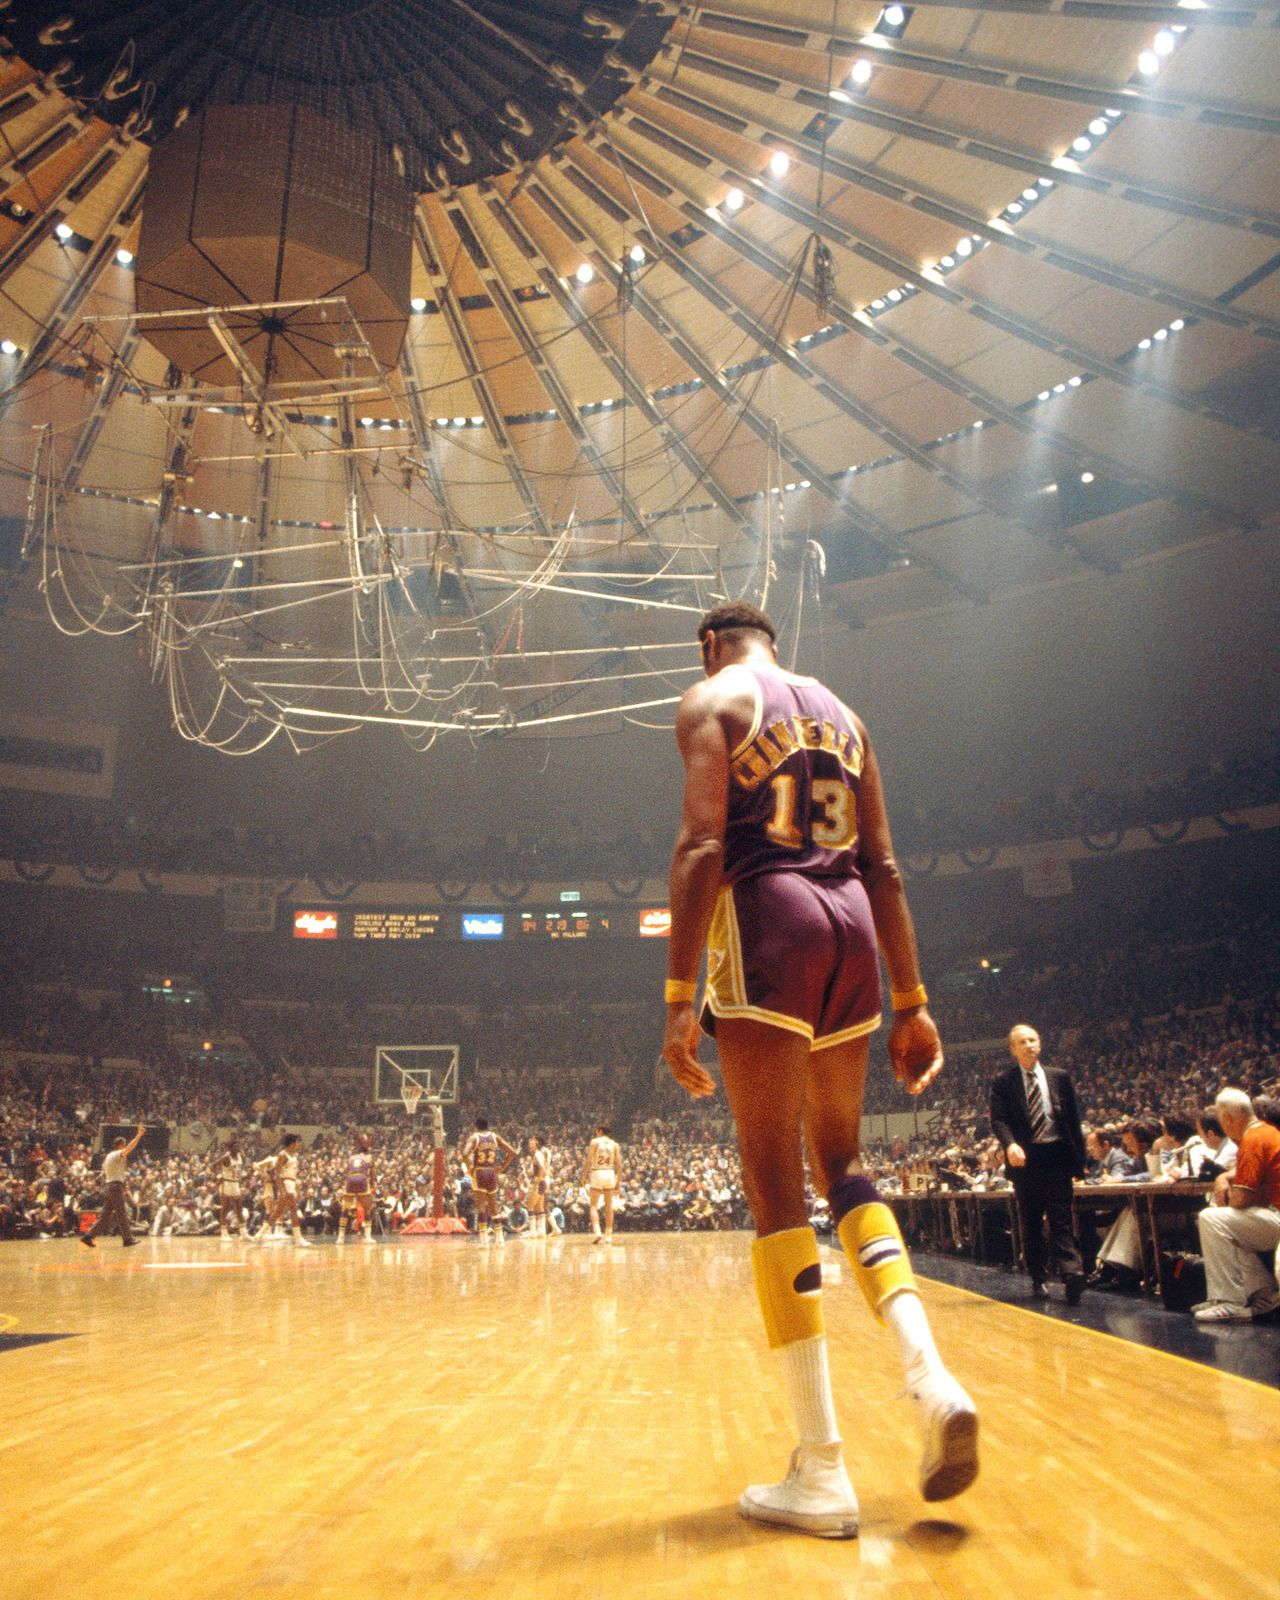 LA Lakers center Wilt Chamberlain walks back to the action on the court  against the New York Knicks during a game at Madison Square Garden circa  1970 s in ... 93ab081d7